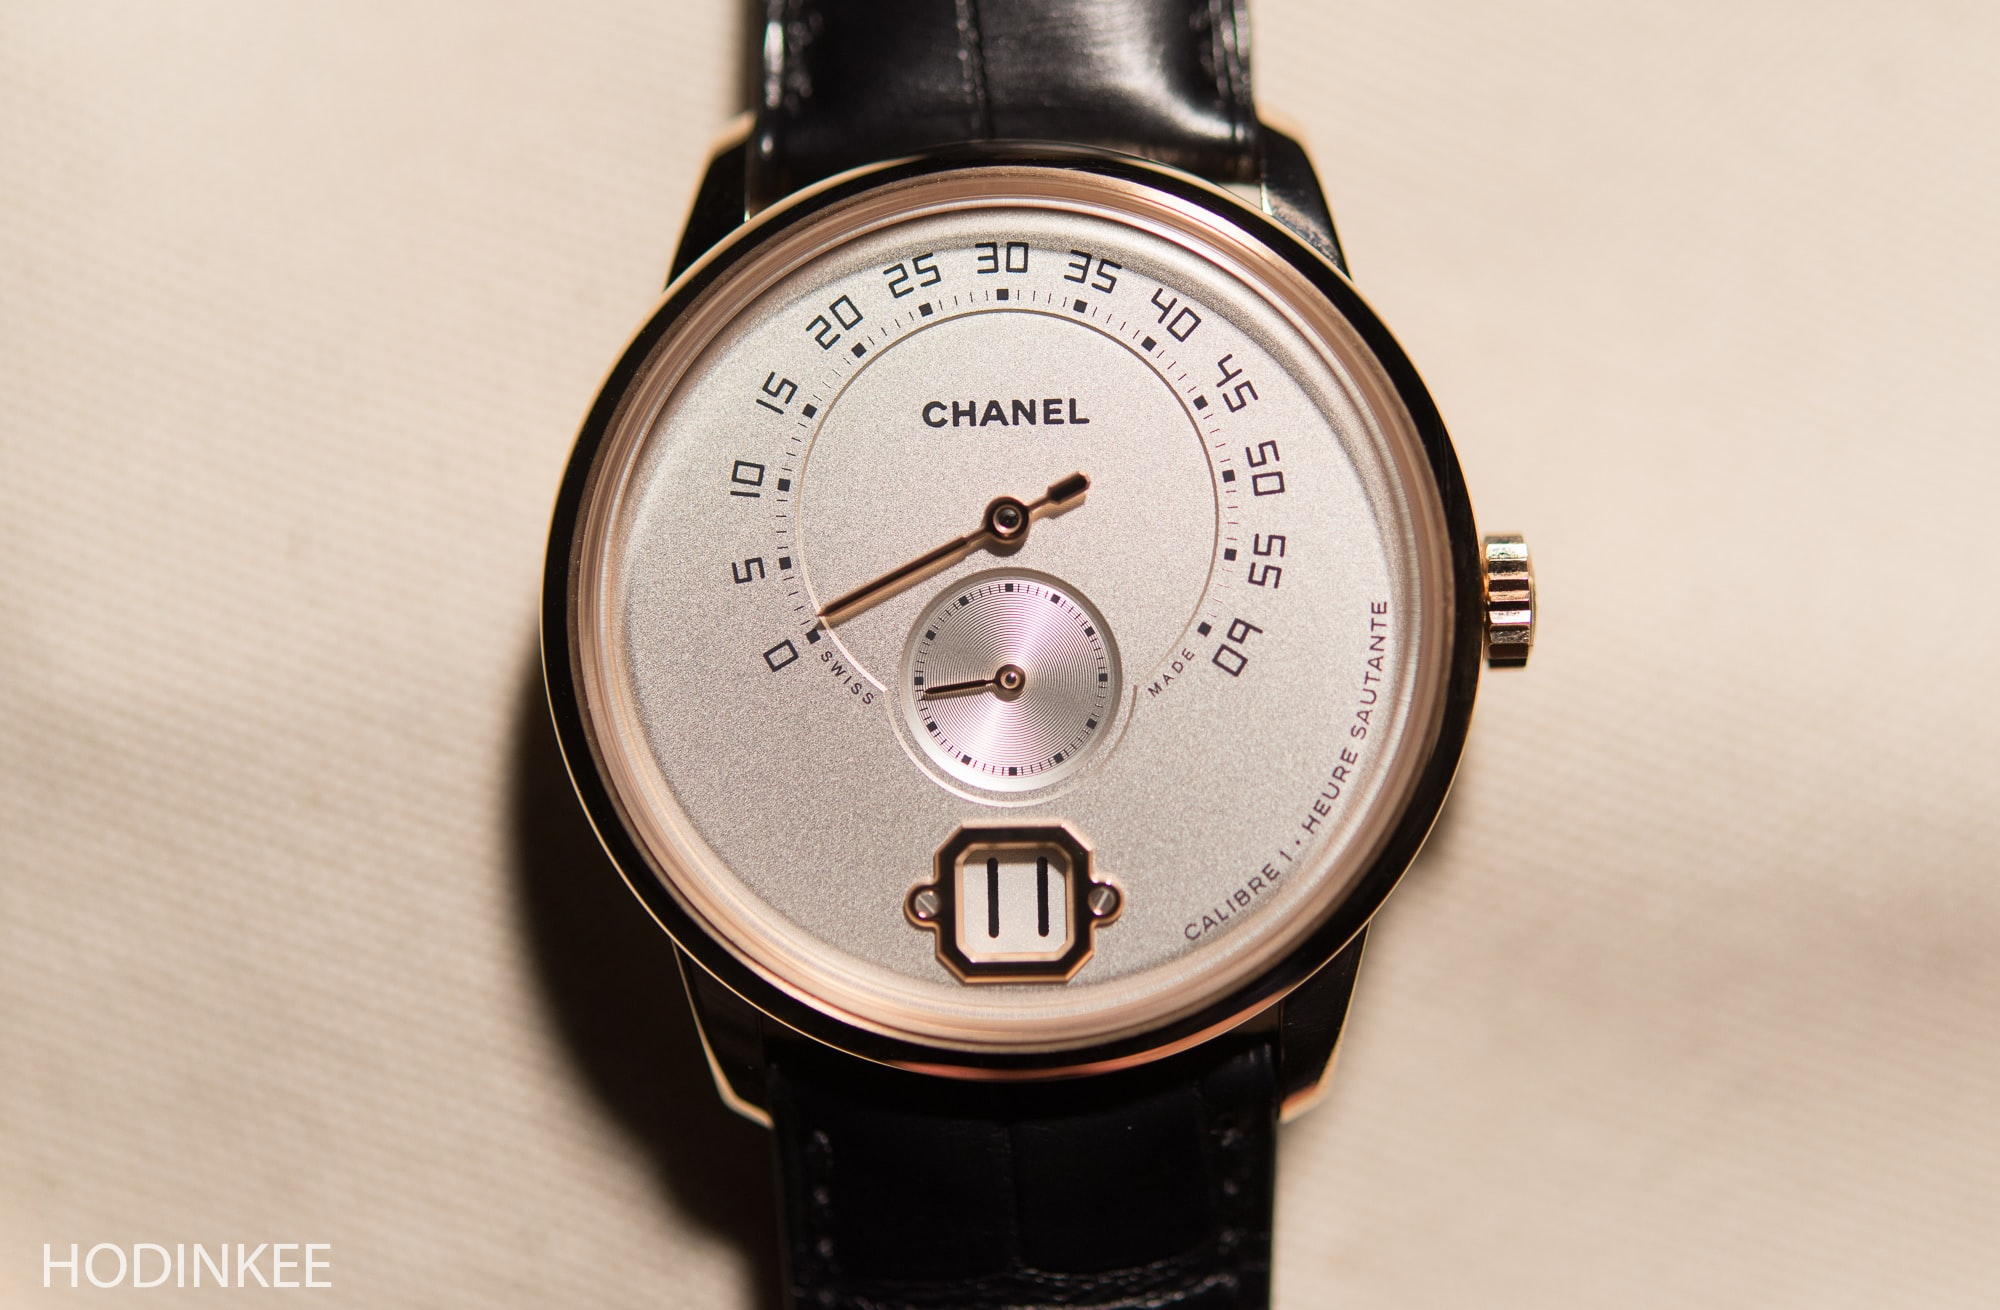 Chanel Monsieur de Chanel Editorial: Cara's Favorite Watches From Baselworld 2016 Editorial: Cara's Favorite Watches From Baselworld 2016 MonsieurdeChanelwatch 5